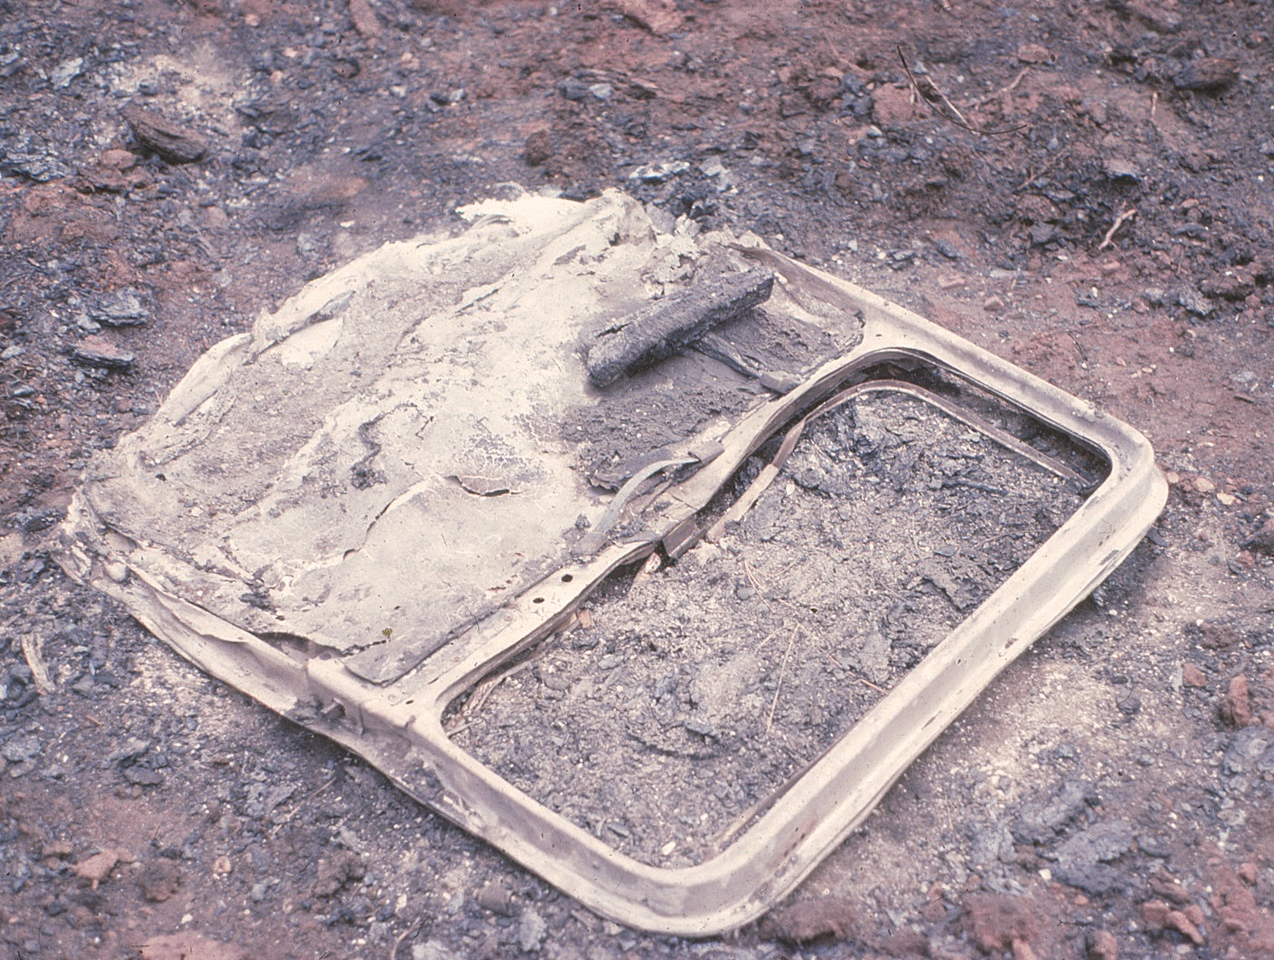 The forward right side passenger door separated on impact and than burned in the resulting post impact fire that swept through the area.